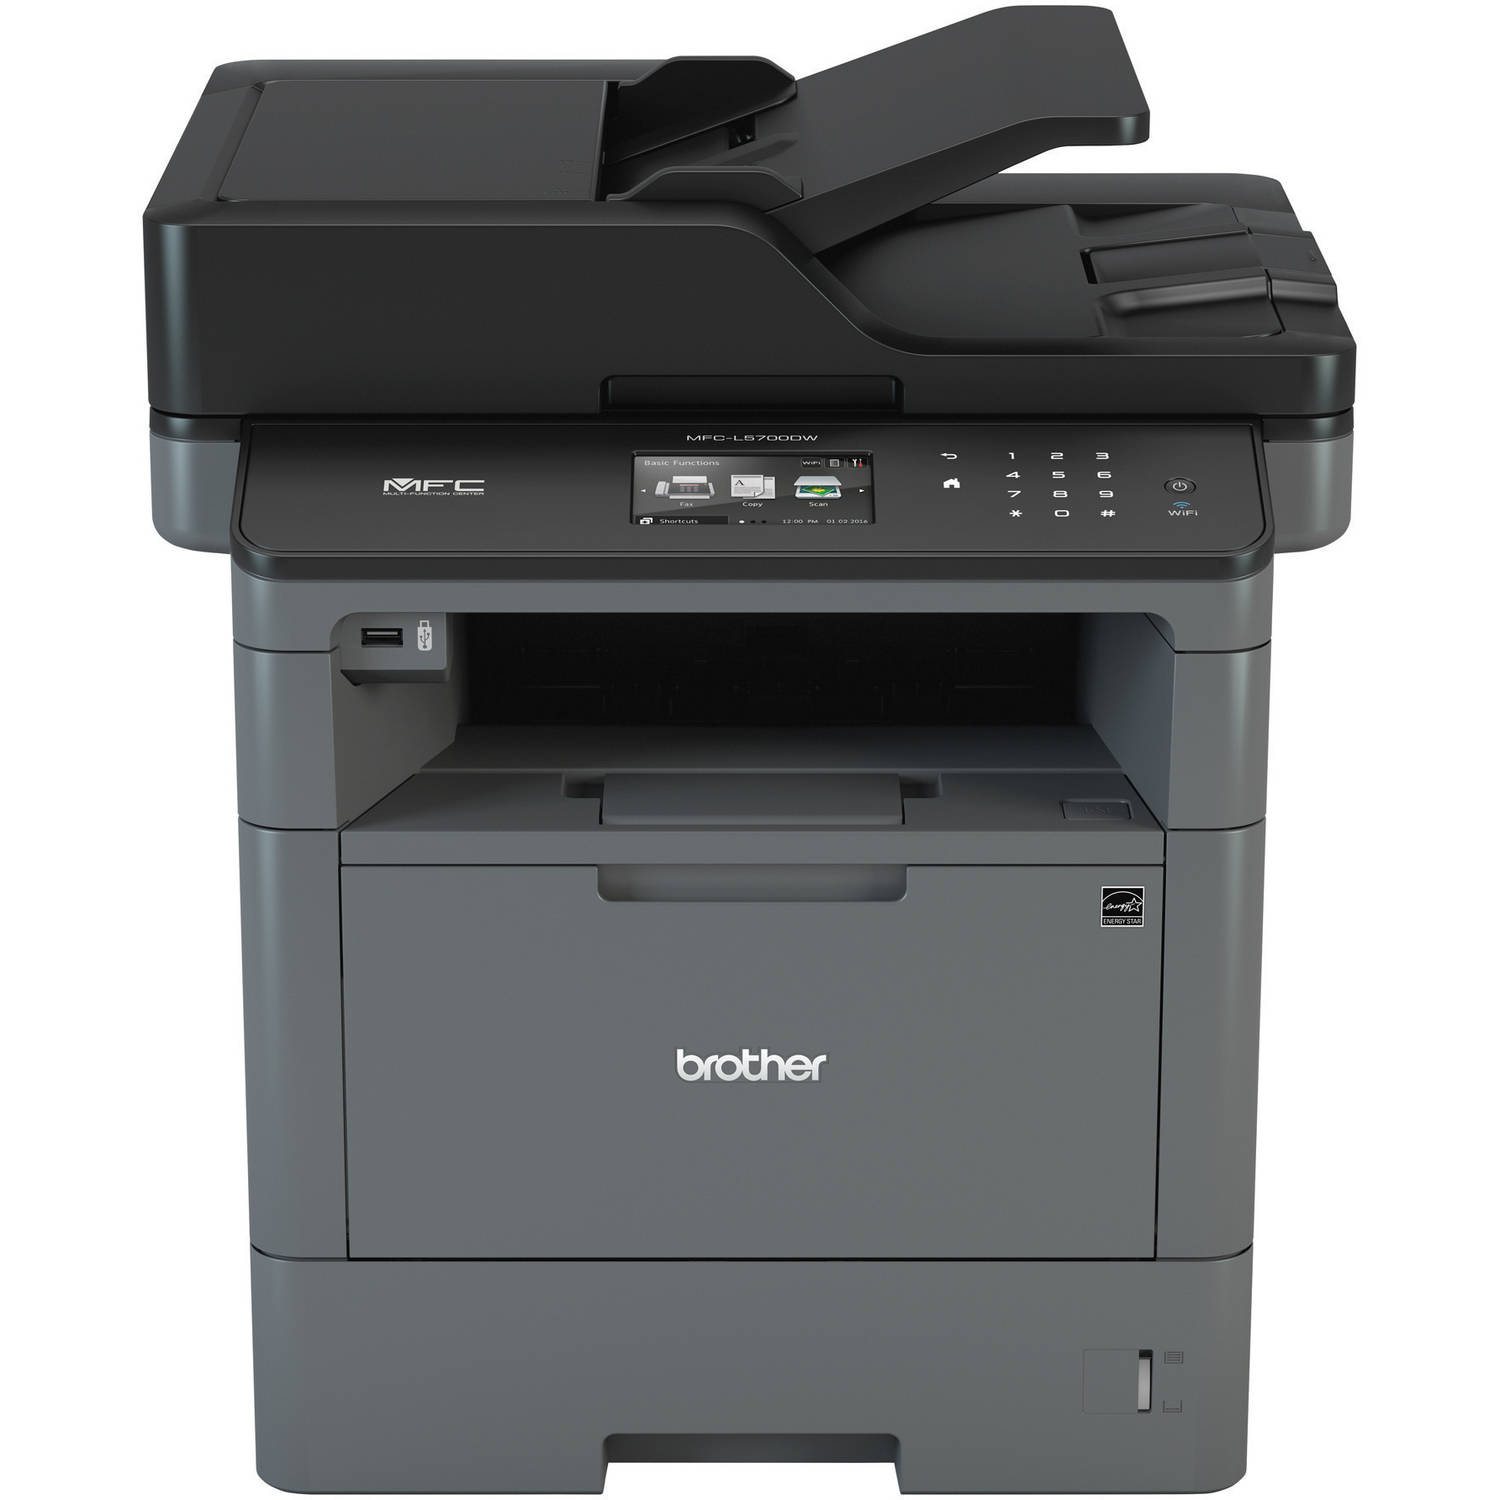 scanner and fax machine